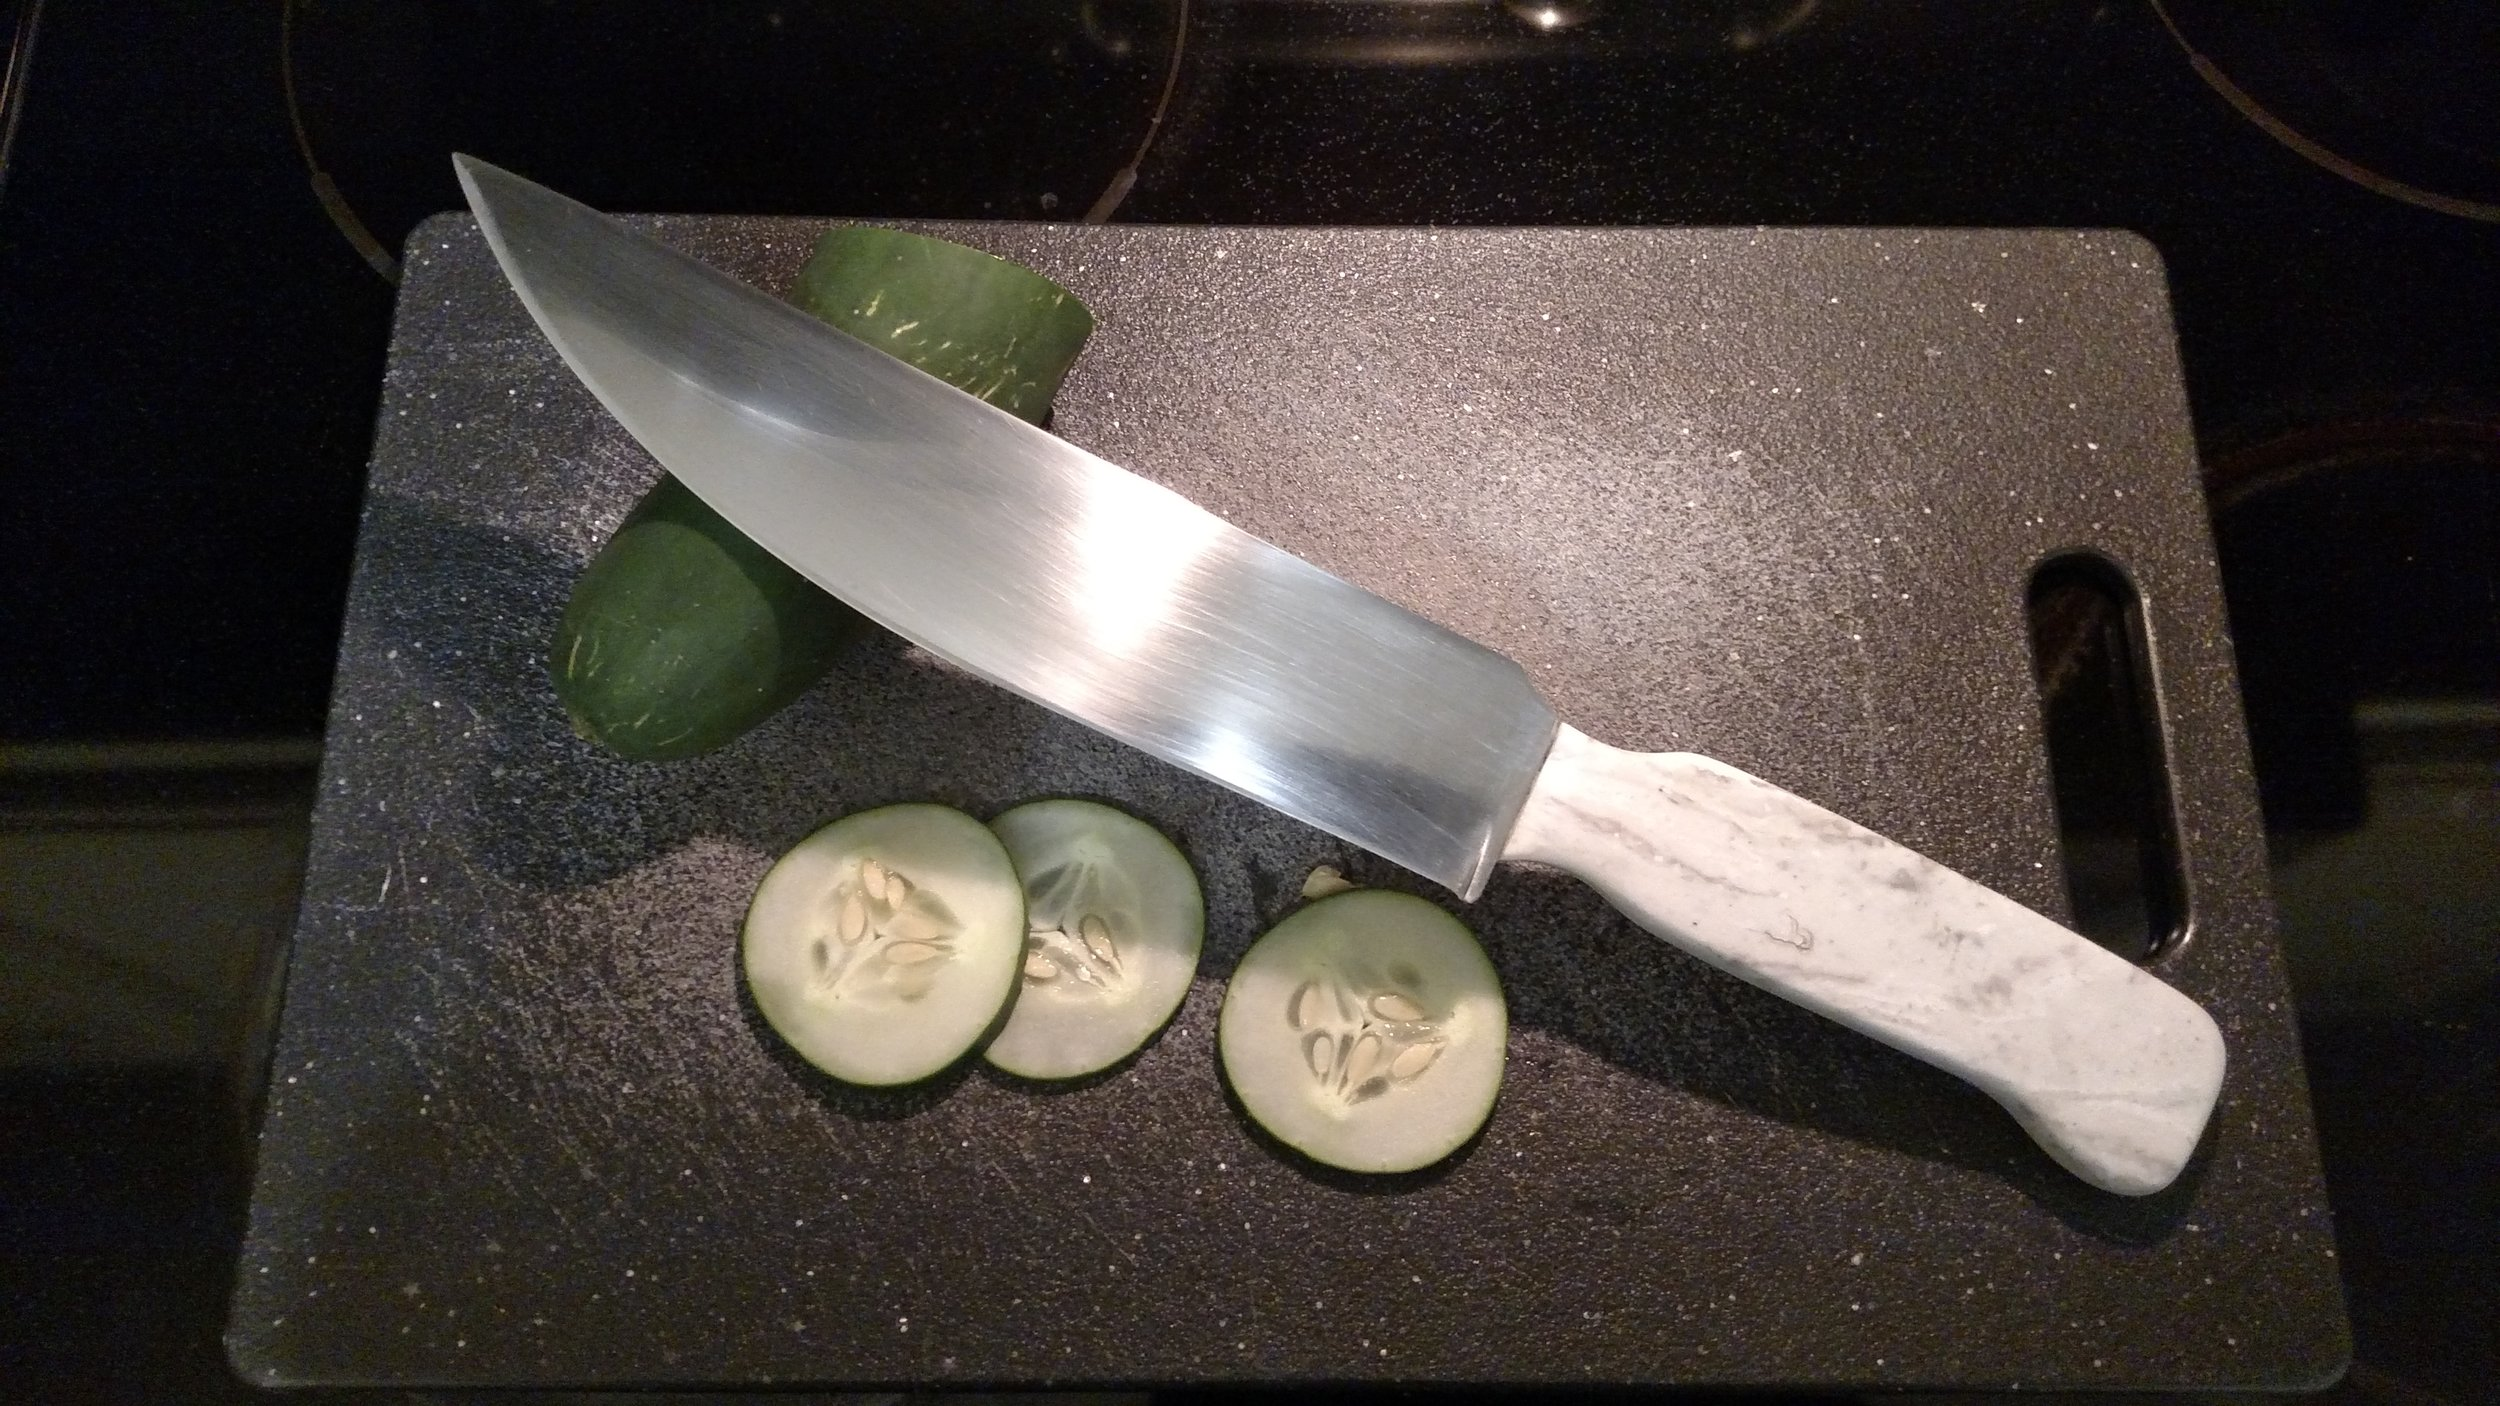 Kitchen Knife with Corian Handle